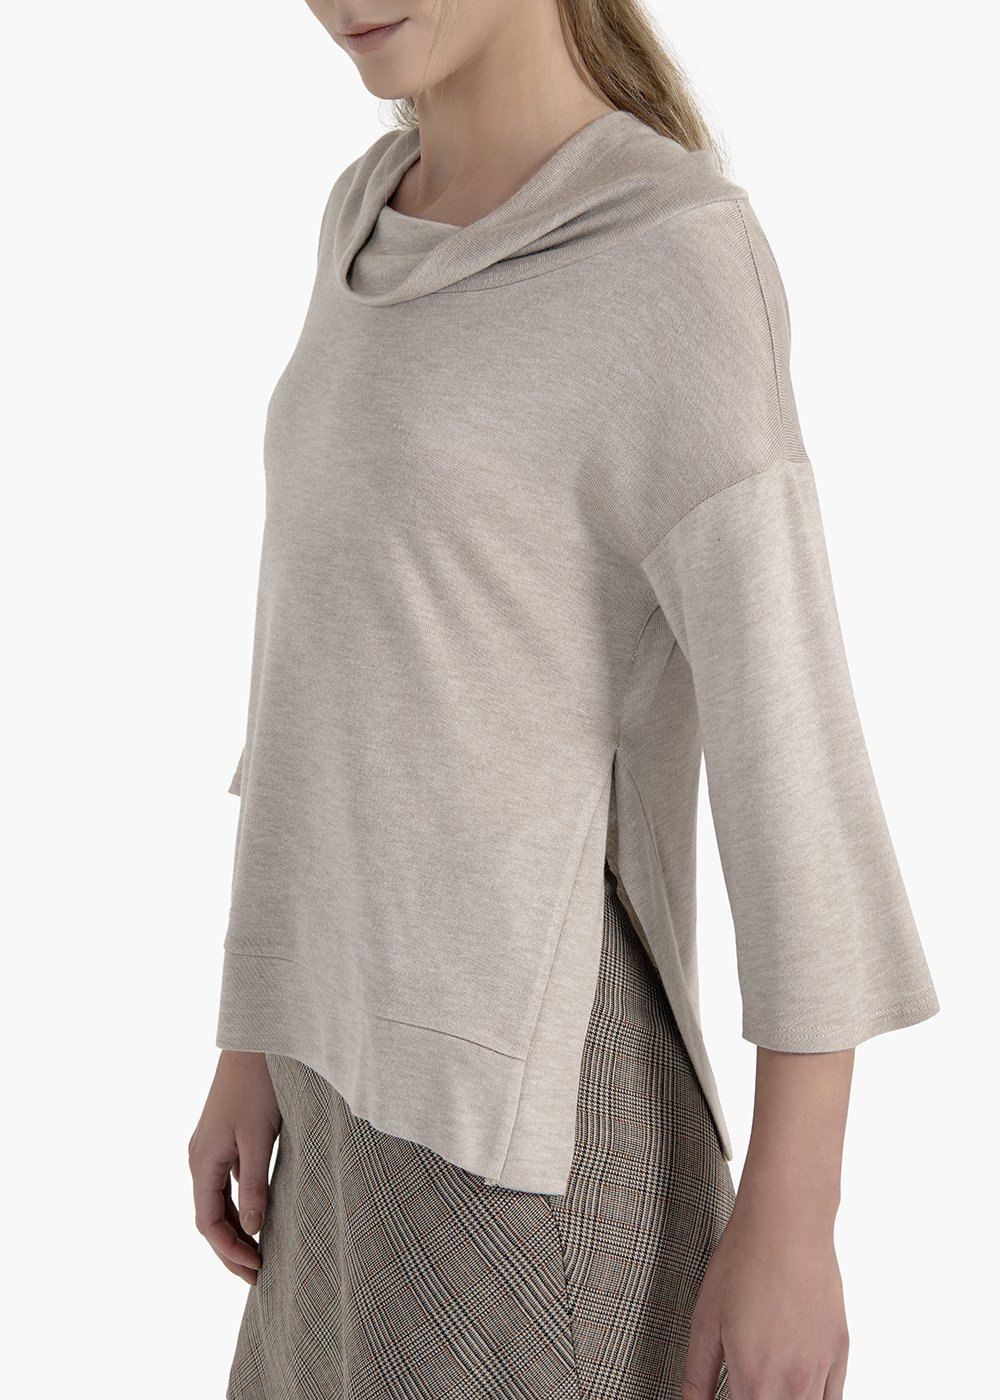 T-shirt Martin in raw viscose with ring collar - Grey - Woman